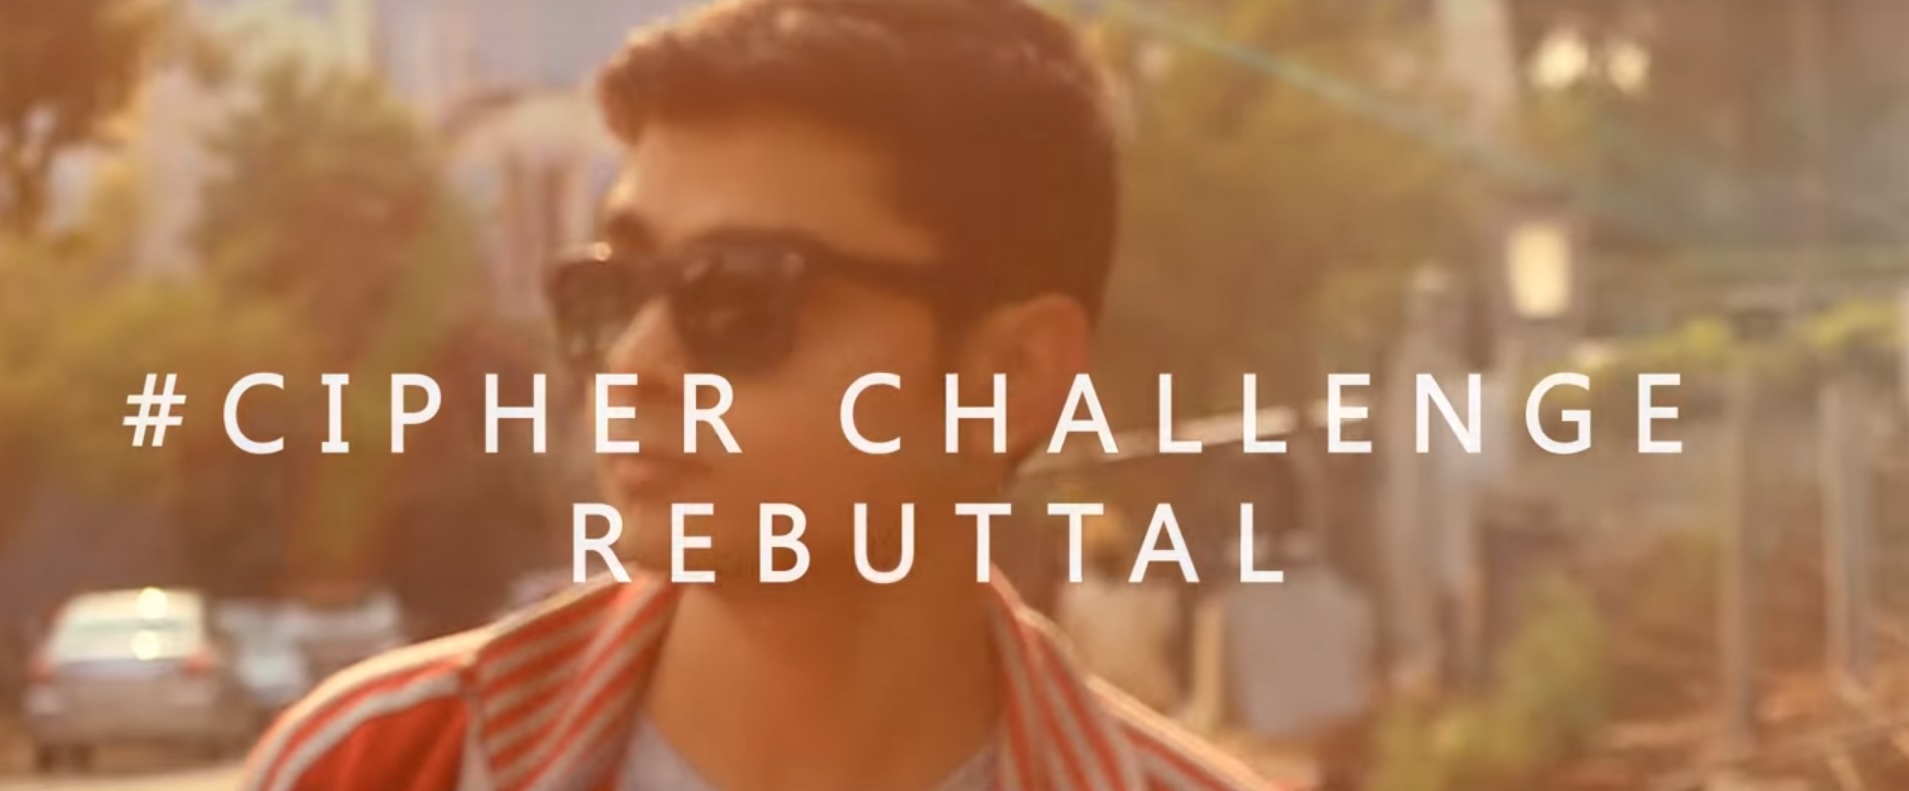 cipher challenge rebuttal youngsta ash